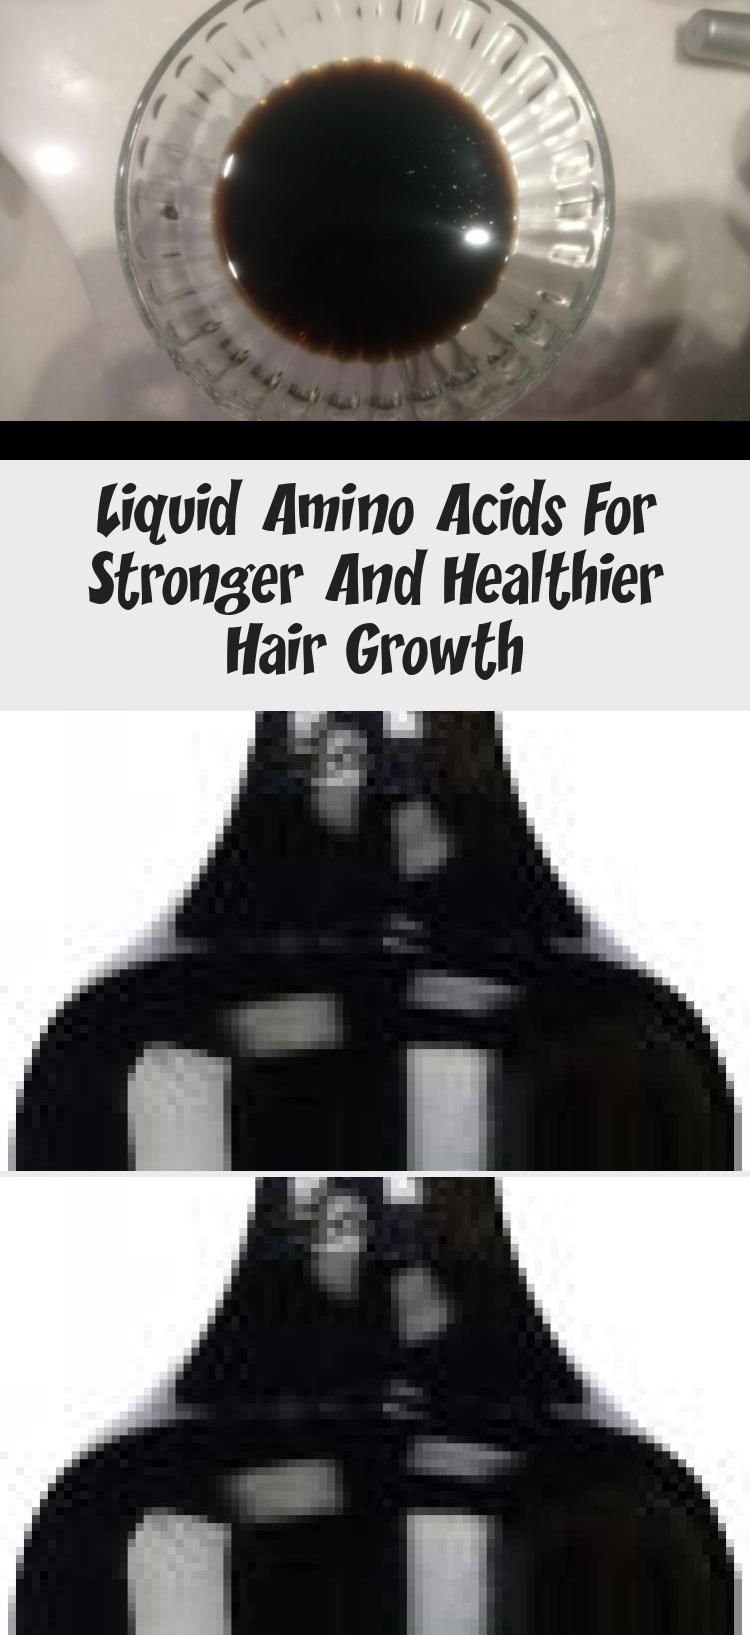 Hair Supplement} and How to Use Liquid Amino Acids for Stronger & Healthier Hair Growth. #hair #haircare #naturalhair #teamnatural #protein #moisture #stronghair #naturalhaircommunity #liquidaminos #DIY #DIYrecipes #beauty #grooming #Indianhairgrowth #ScalpDetoxhairgrowth #hairgrowthStages #hairgrowthTips #hairgrowthSerum